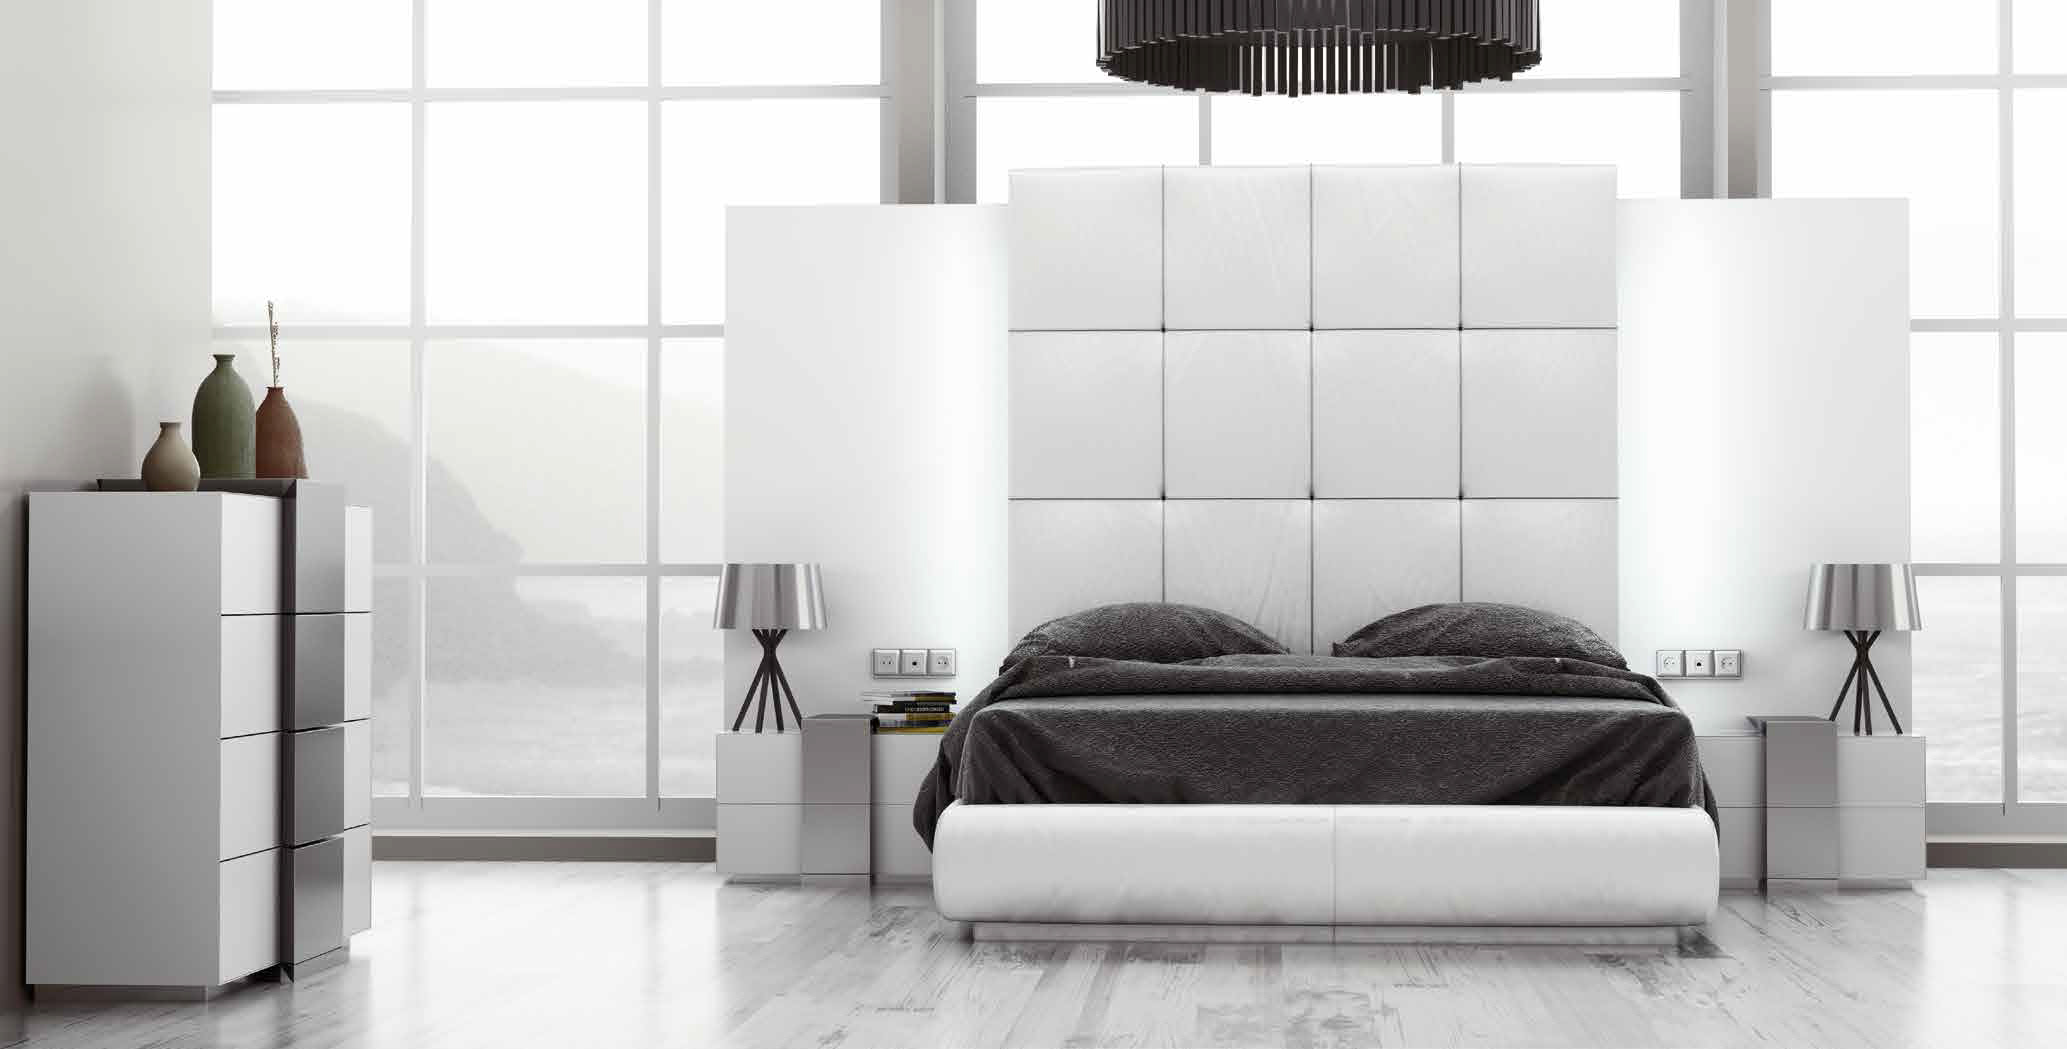 Brands Franco Furniture Bedrooms vol1, Spain DOR 09